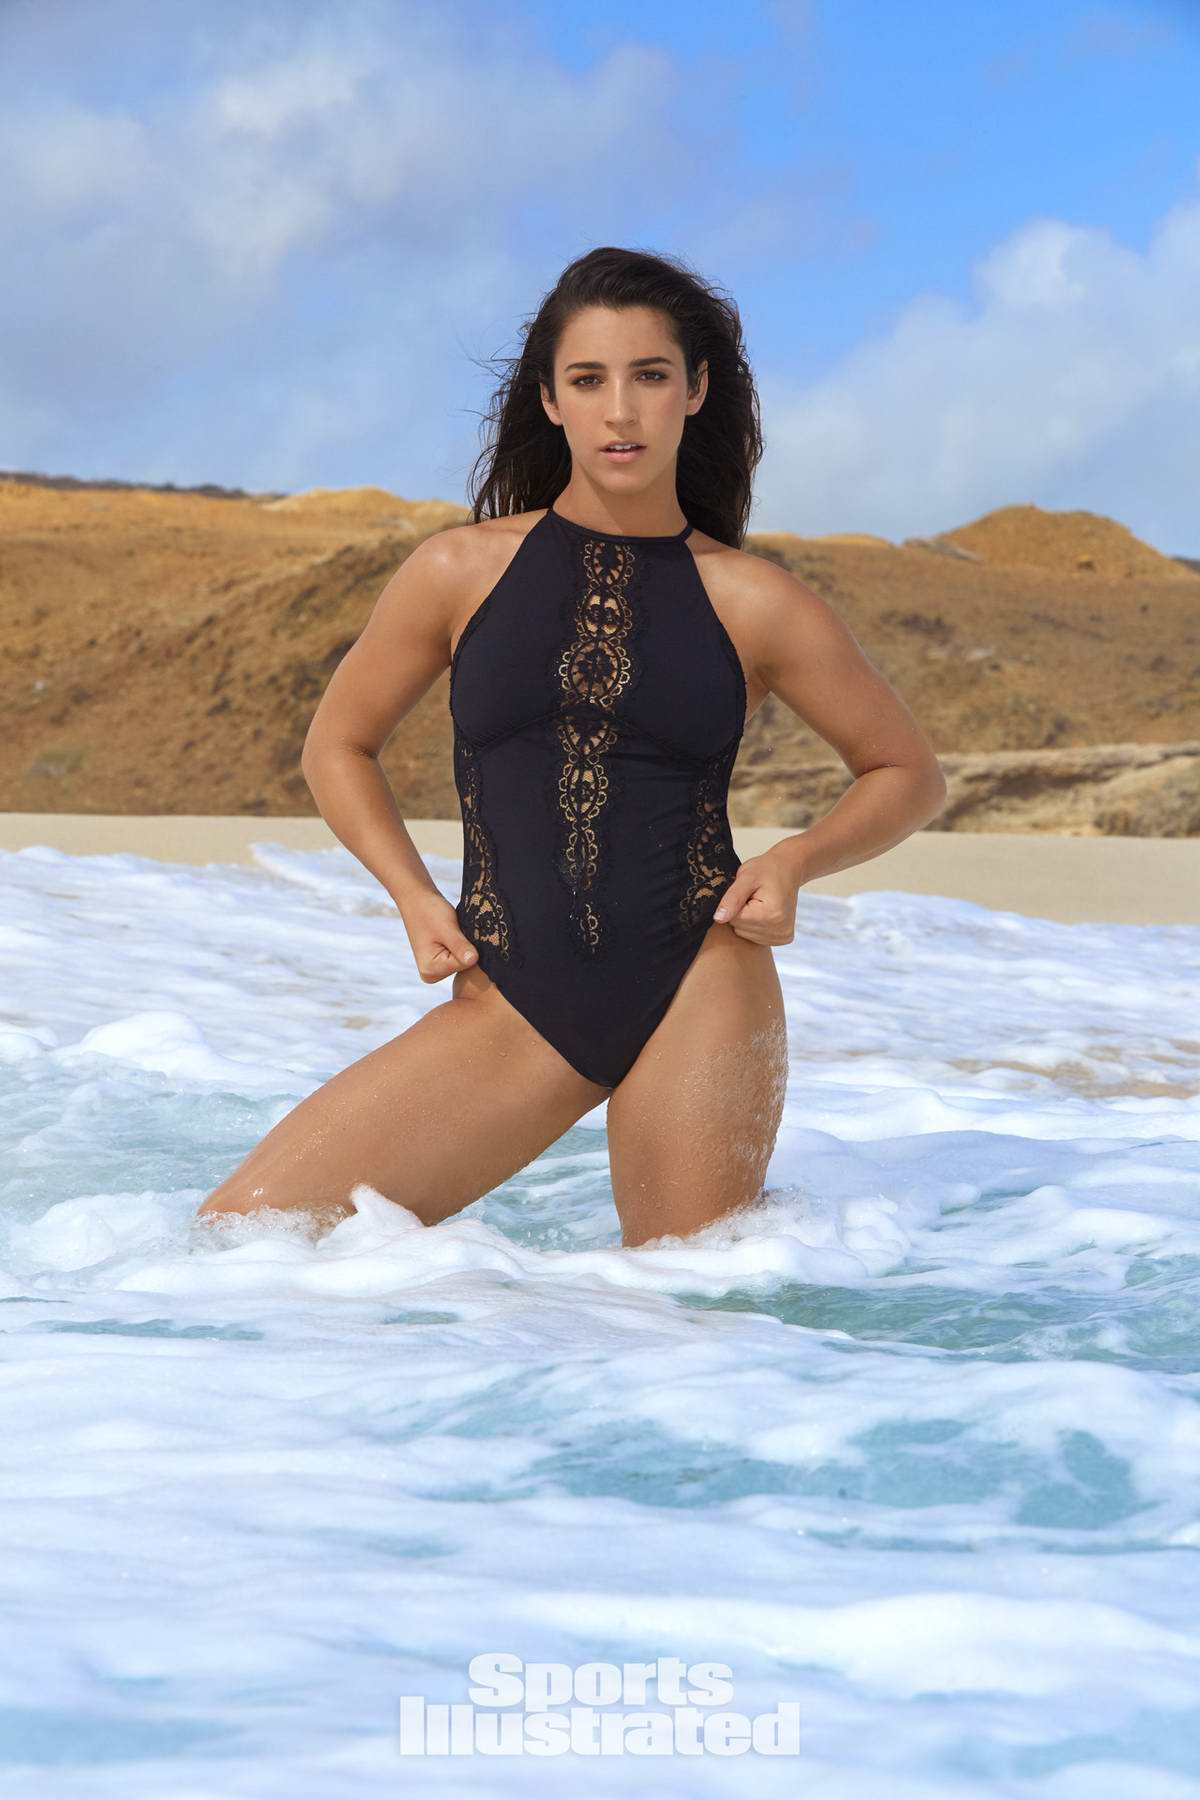 Aly Raisman In Sports Illustrated Swimsuit Issue 2018 3